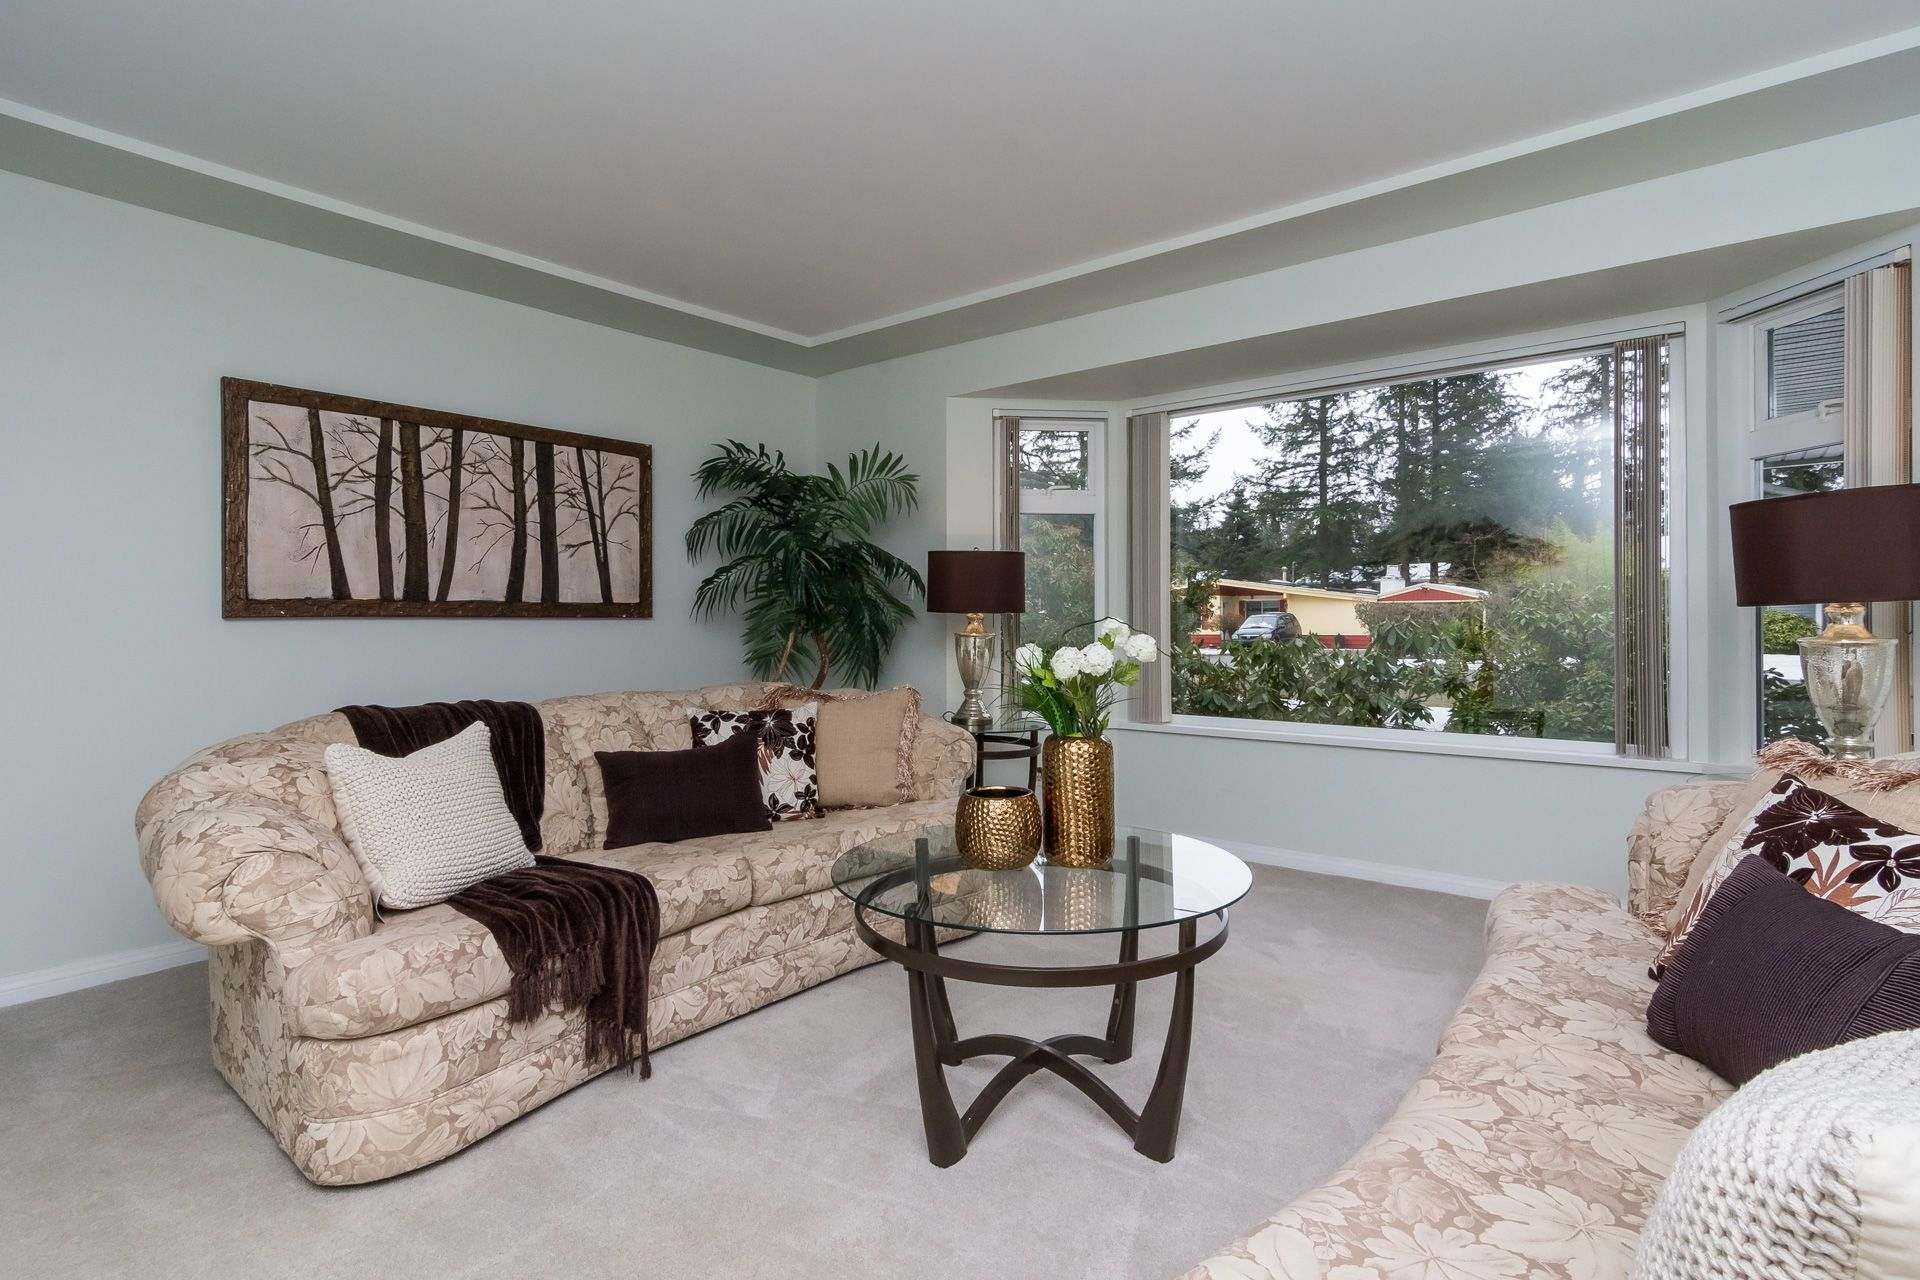 """Photo 7: Photos: 19941 37 Avenue in Langley: Brookswood Langley House for sale in """"Brookswood"""" : MLS®# R2240474"""